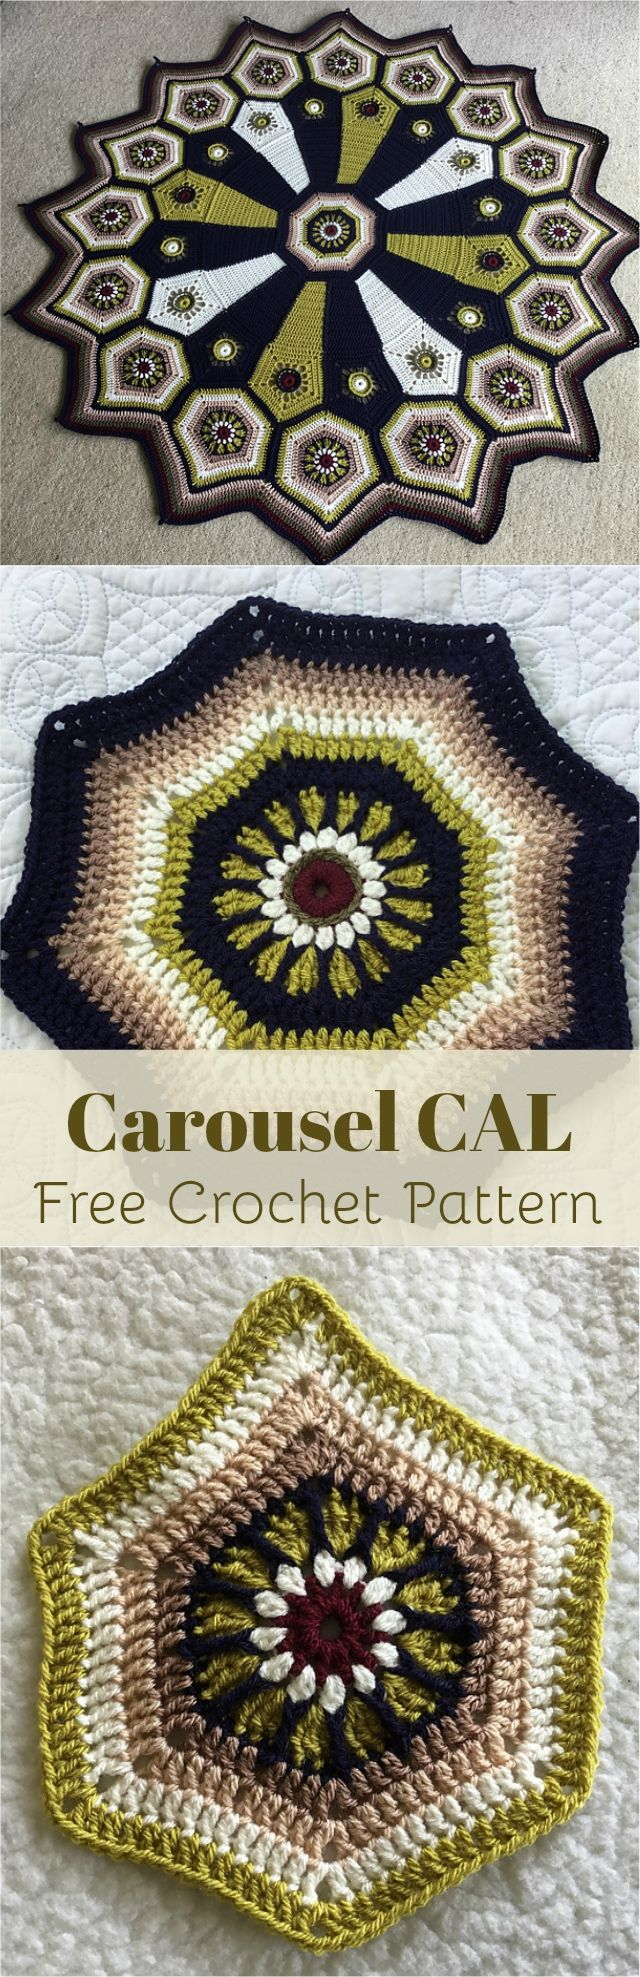 Carousel CAL – Free Crochet Pattern: Created by experienced designer Sue Pinner, the Carousel Blanket is a gorgeous crochet pattern which has been chosen by Stylecraft for their Autumn 2016 CAL #crochet #freepattern #crochetlove